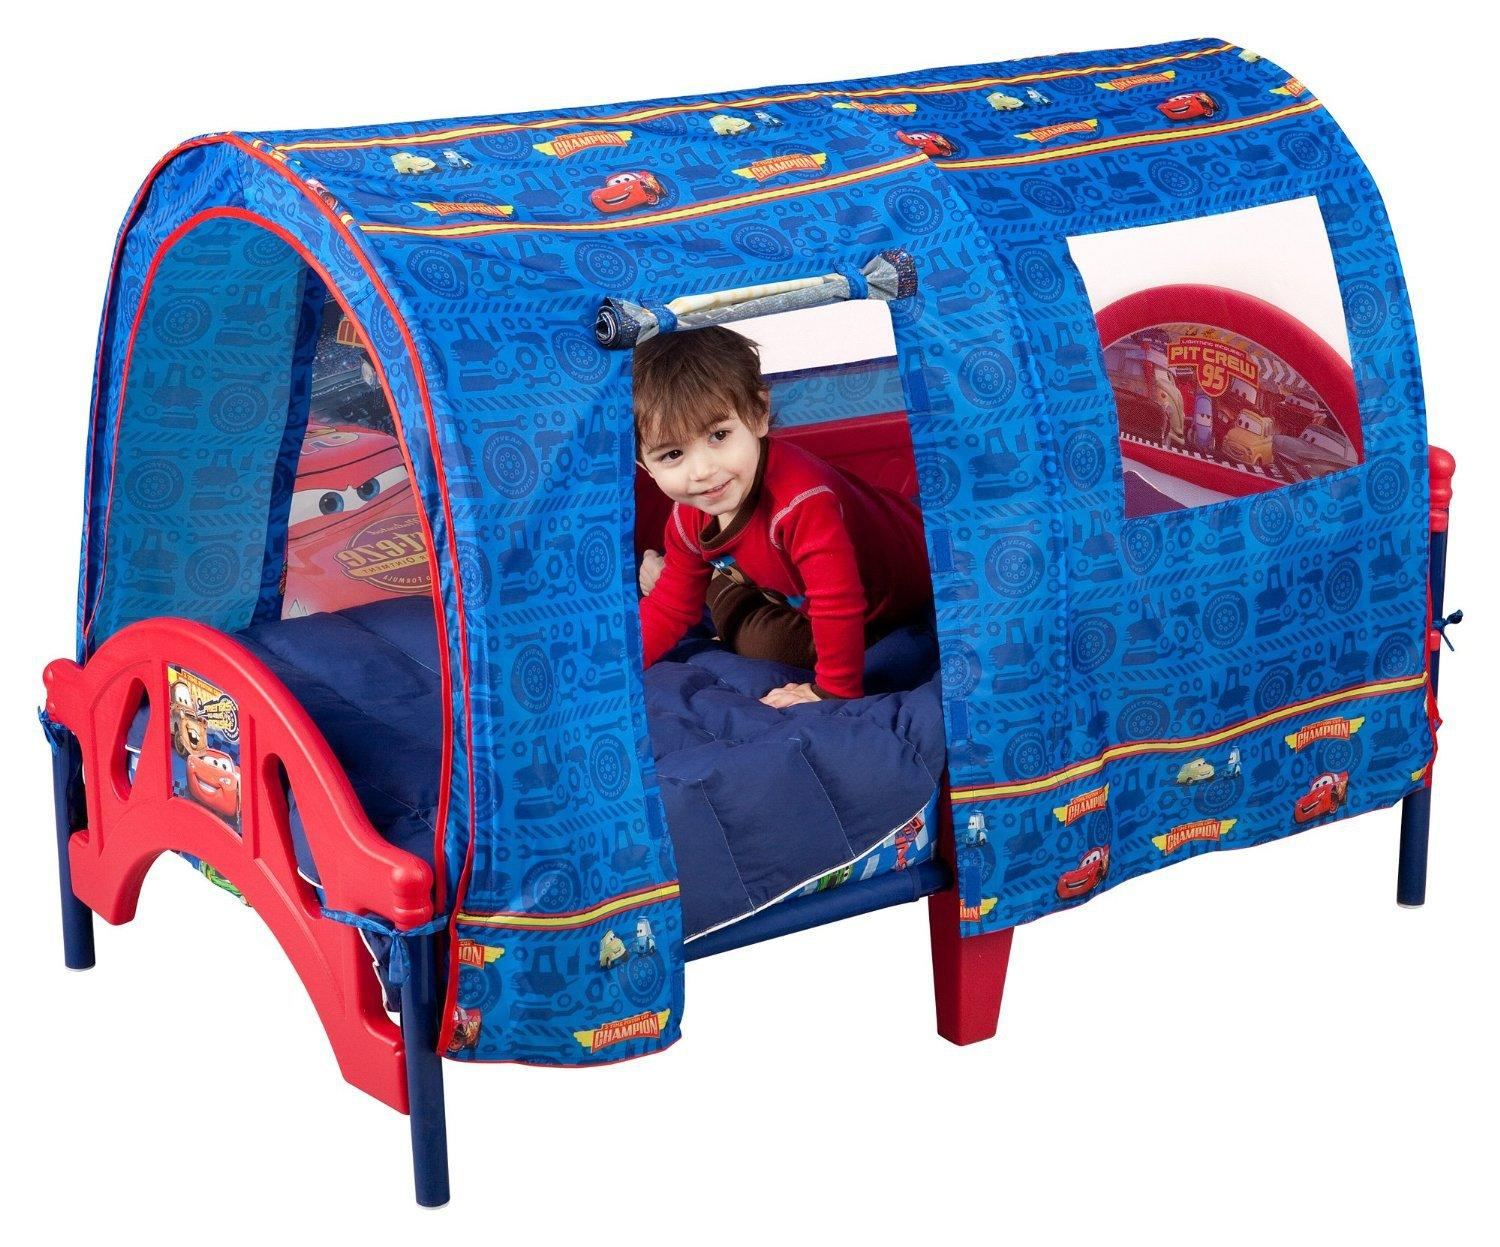 Disney Pixar Cars Tent Toddler Bed from Amazon | Babies ...